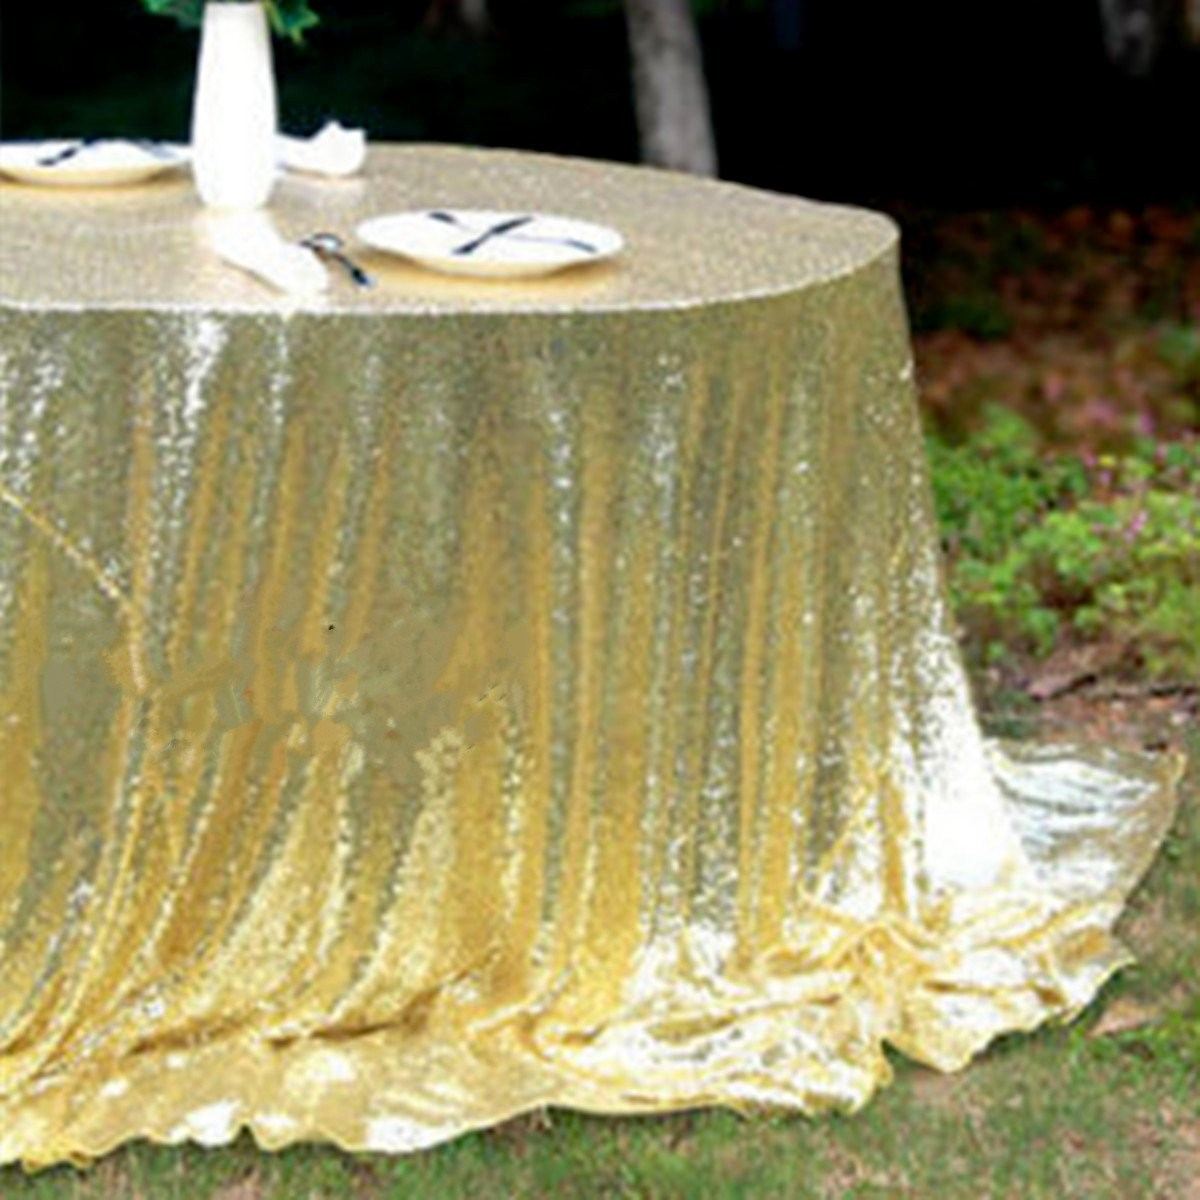 Tablecloth Sparkly Gold Champagne Sequin Glamorous Cloth Fabric For Event Table for DIY Craft Materials 128 x 115 cm(China (Mainland))